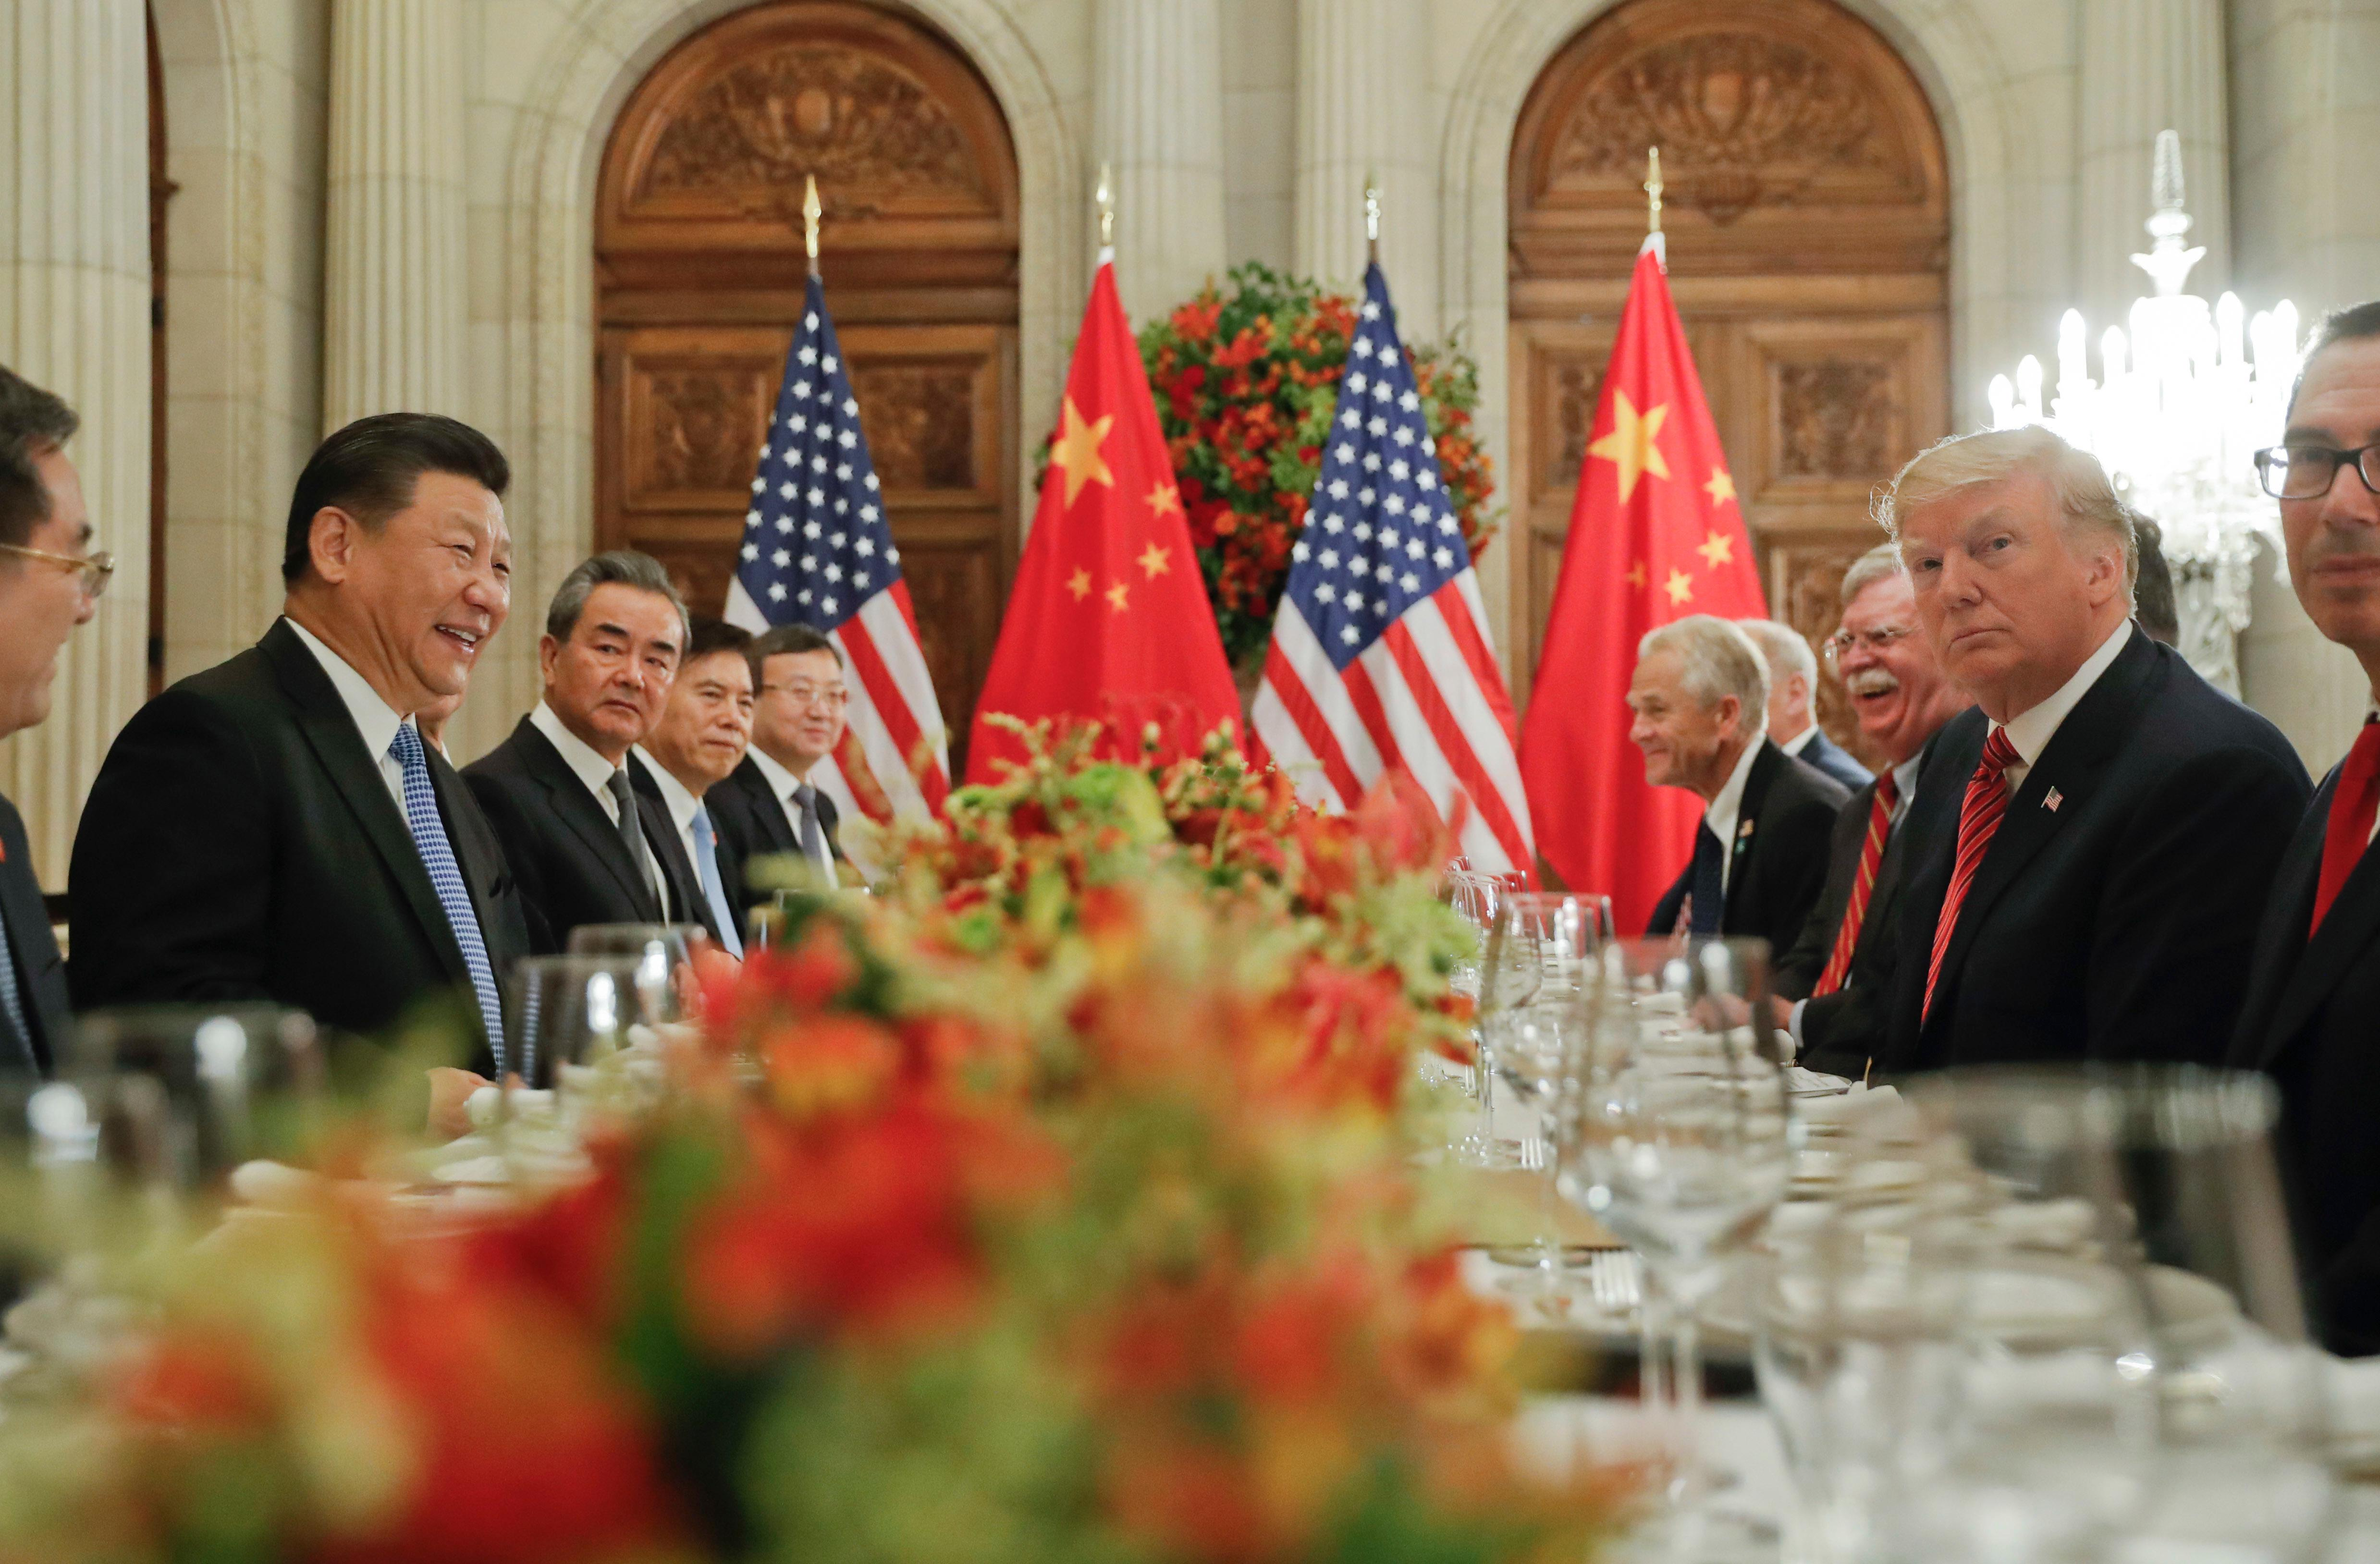 In this Dec. 1, 2018, photo, President Donald Trump, second from right, meets with China's President Xi Jinping, second from left, during their bilateral meeting at the G20 Summit, in Buenos Aires, Argentina. (AP Photo/Pablo Martinez Monsivais, File)